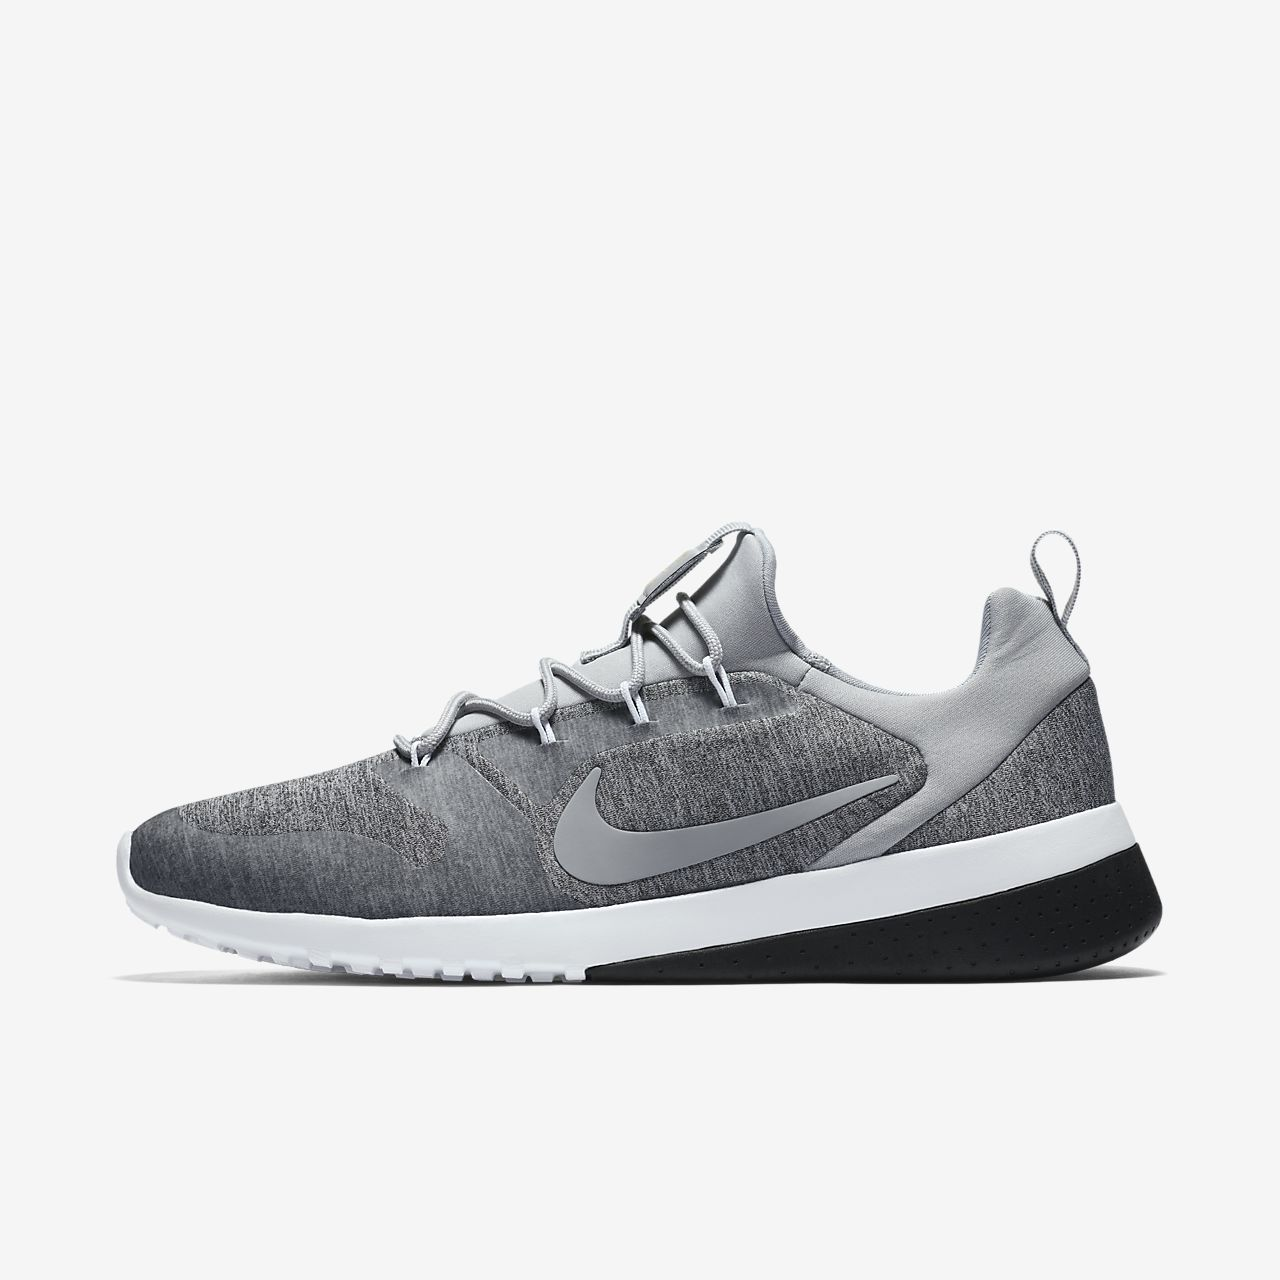 torneo Palacio de los niños Entender  grey nike shoes mens Cheaper Than Retail Price> Buy Clothing, Accessories  and lifestyle products for women & men -